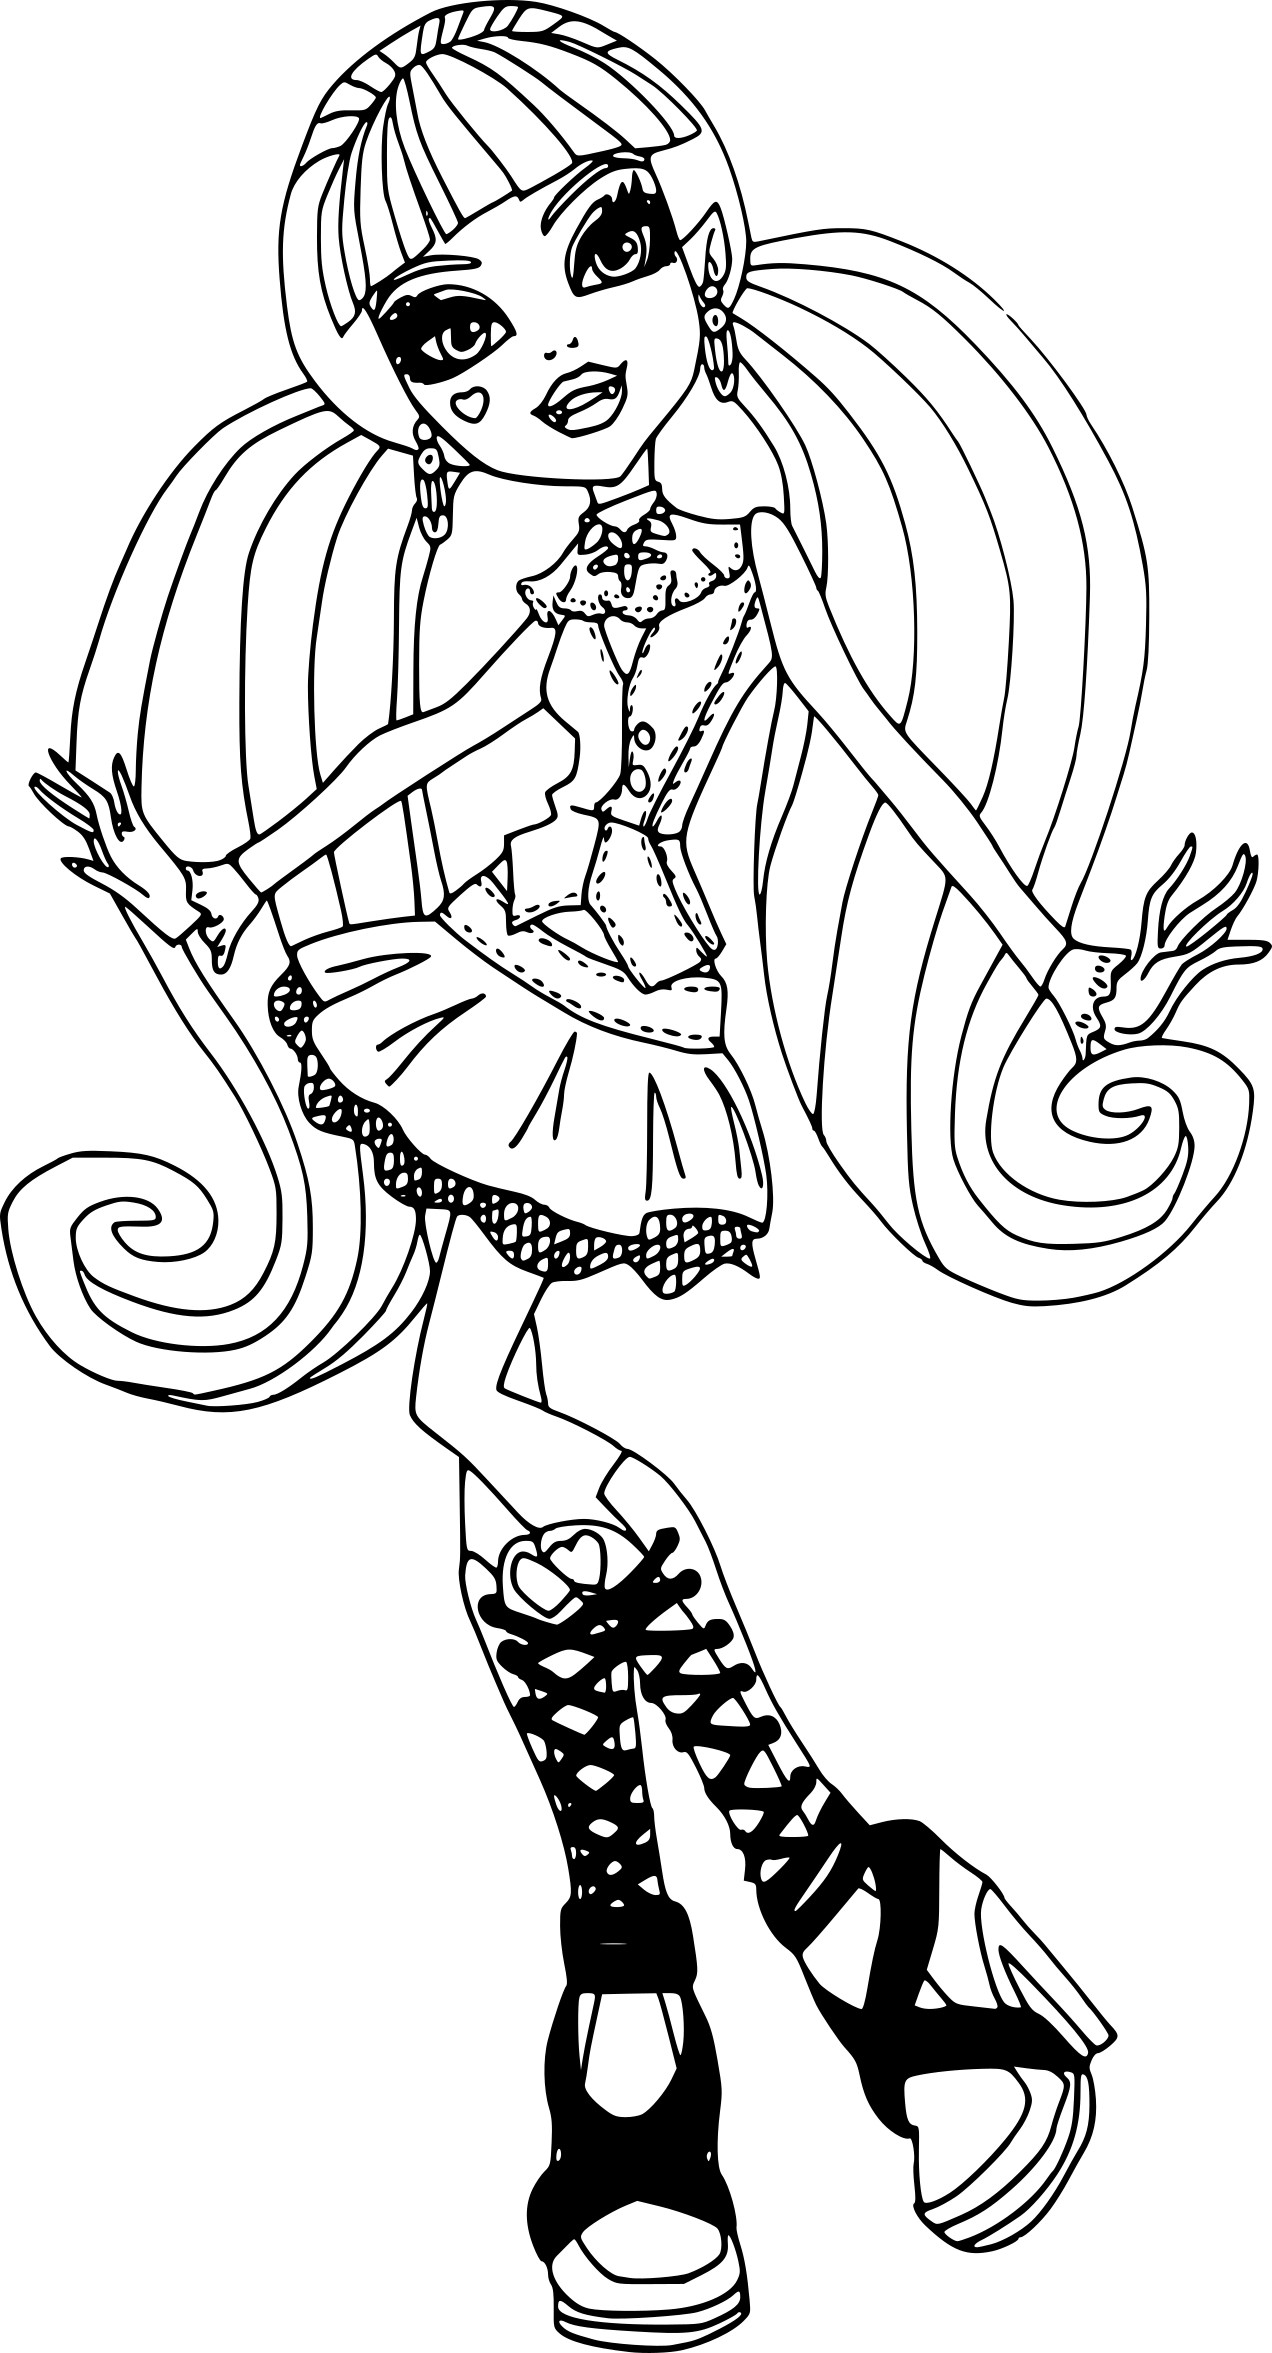 Frais dessin a colorier monster high baby - Coloriage monster high baby ...